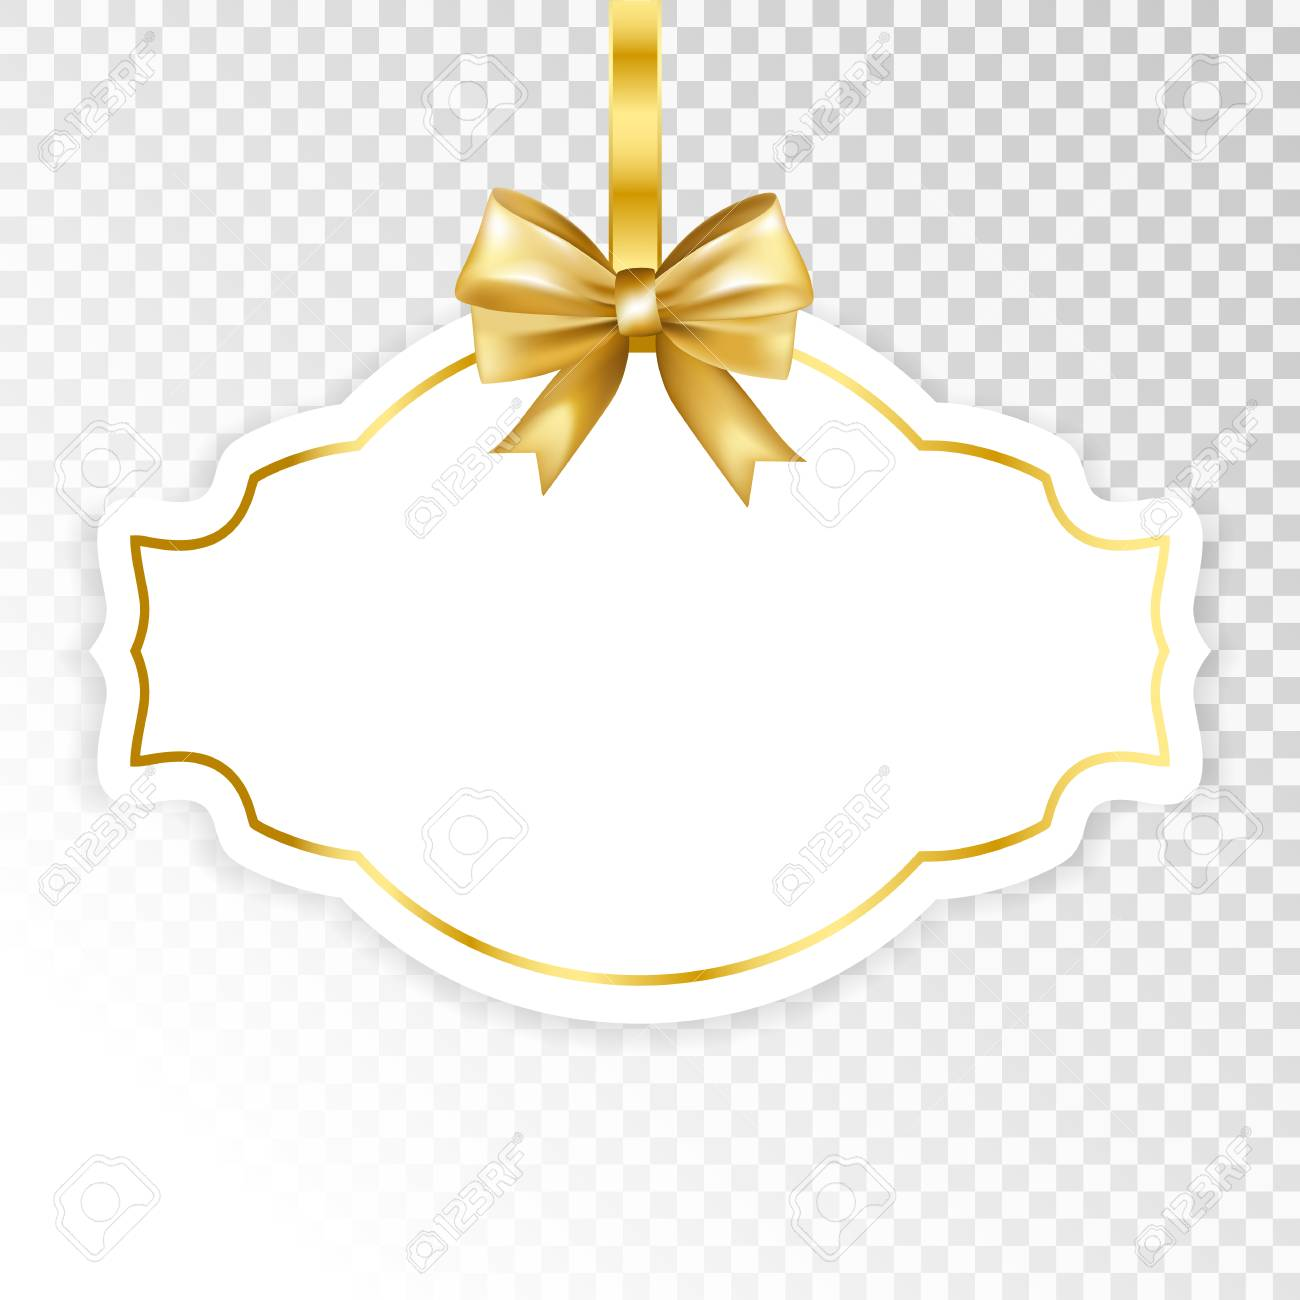 Paper White Frame With Gold Bow Isolated On Transparent Background Vector Illustration Stock